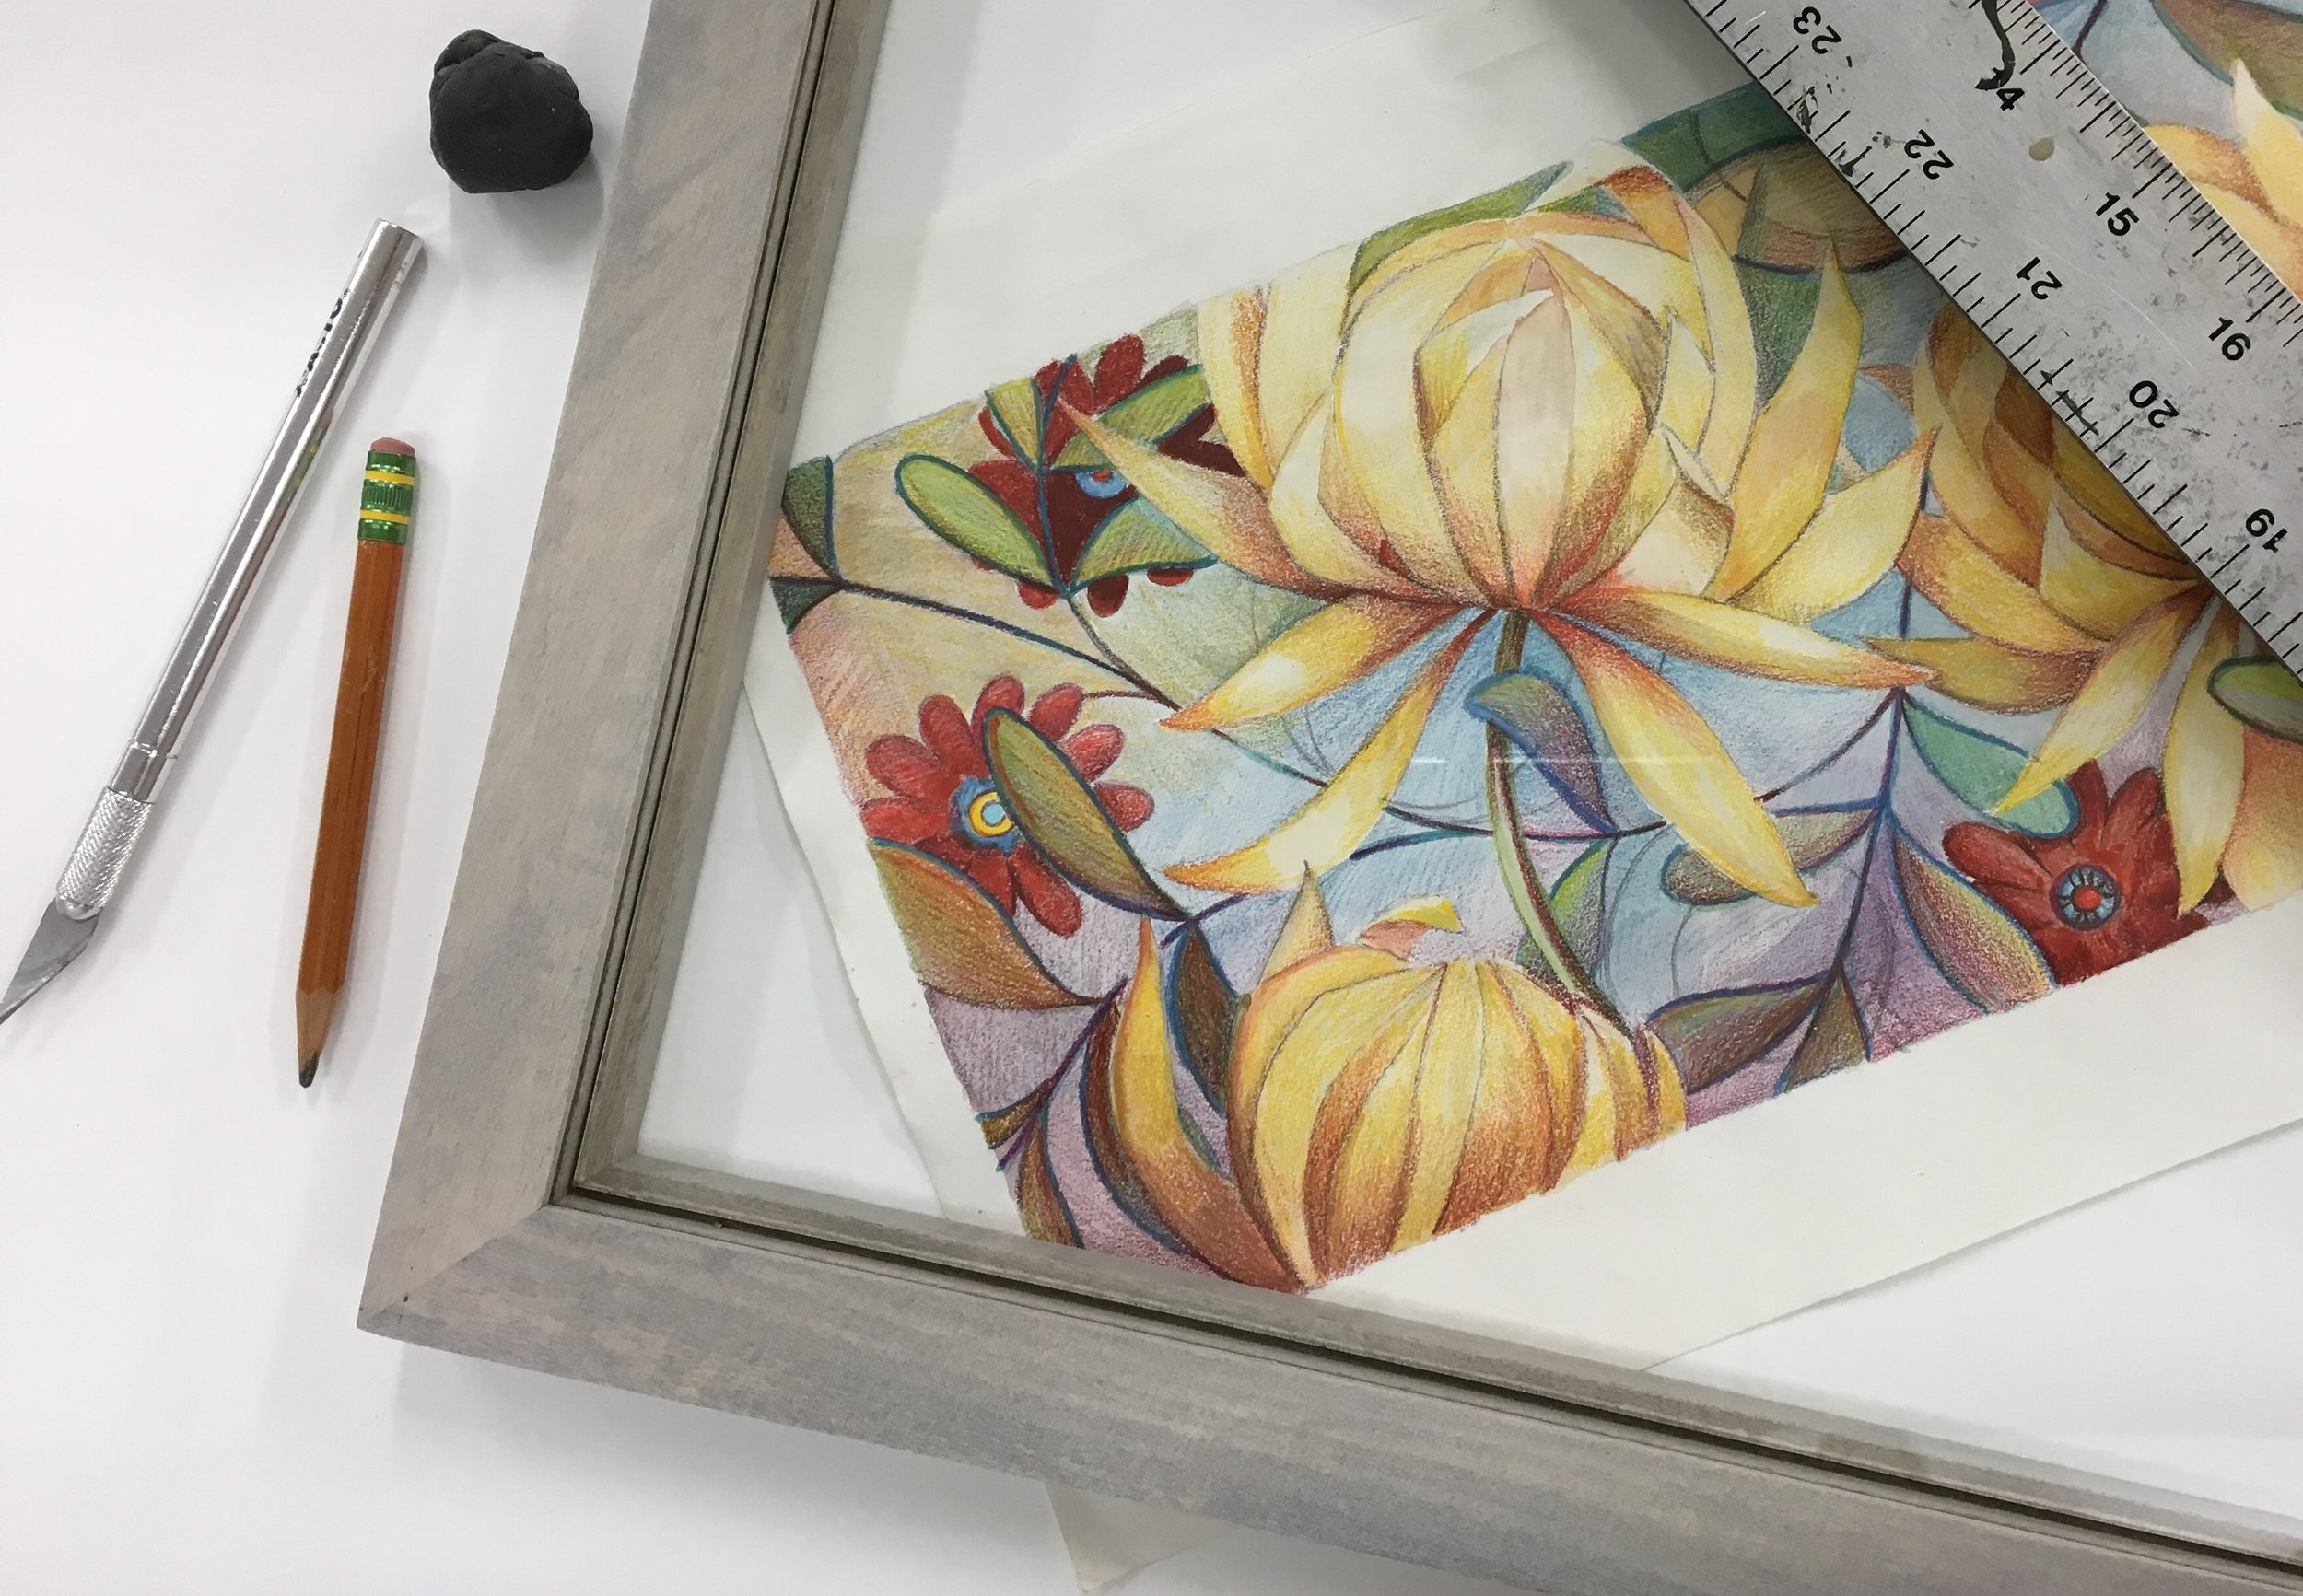 Framing a drawing for my recent Open House. I was motivated to get a lot of my art hung and sell some too!